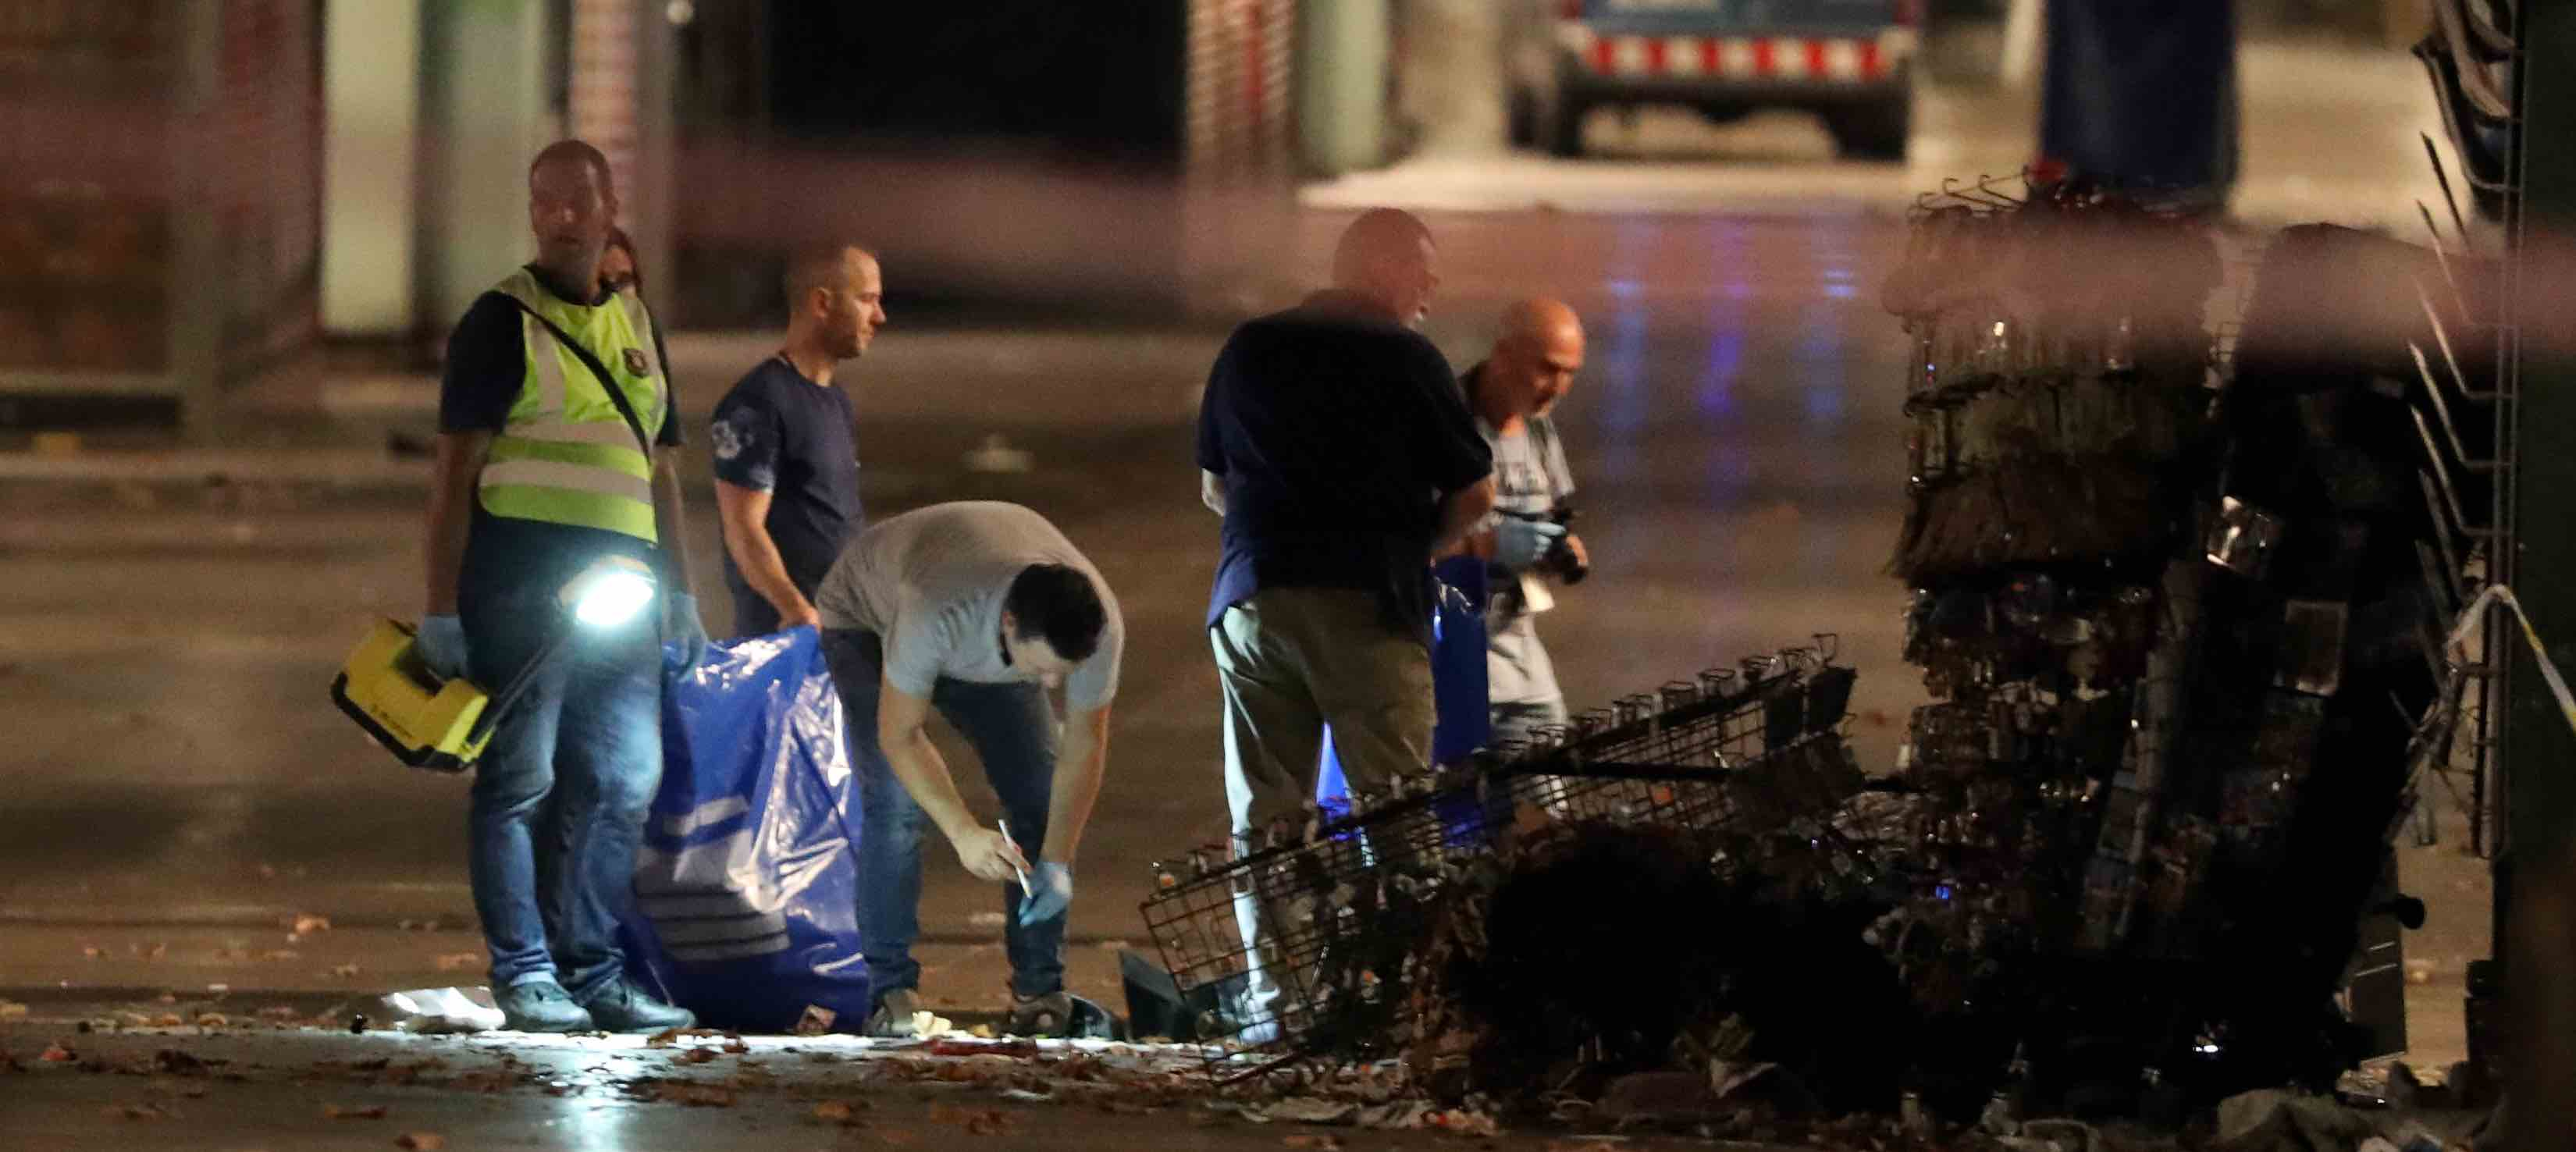 Barcelona Attack: ISIS Claims Responsibility, Police Kill Five Suspected of Planning Second Attack